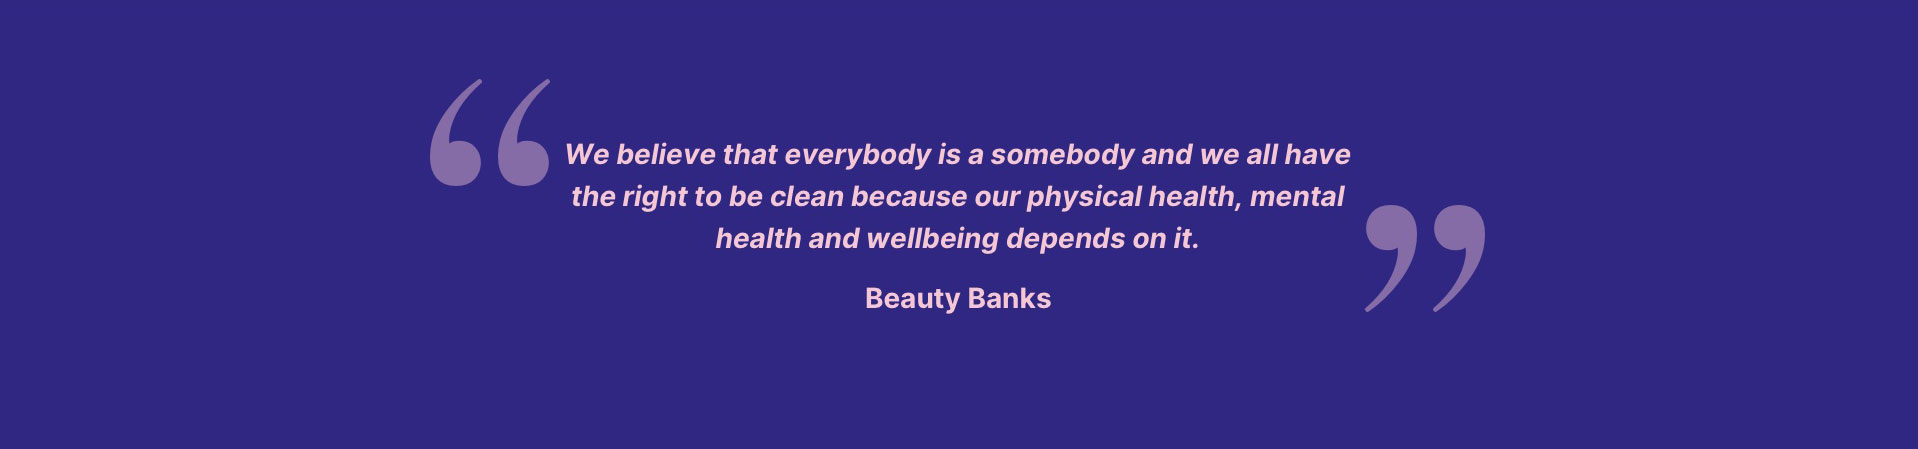 We believe that everbody is a somebody and we all have the right to be clean because our physical health, mental health and wellbeing depends on it.